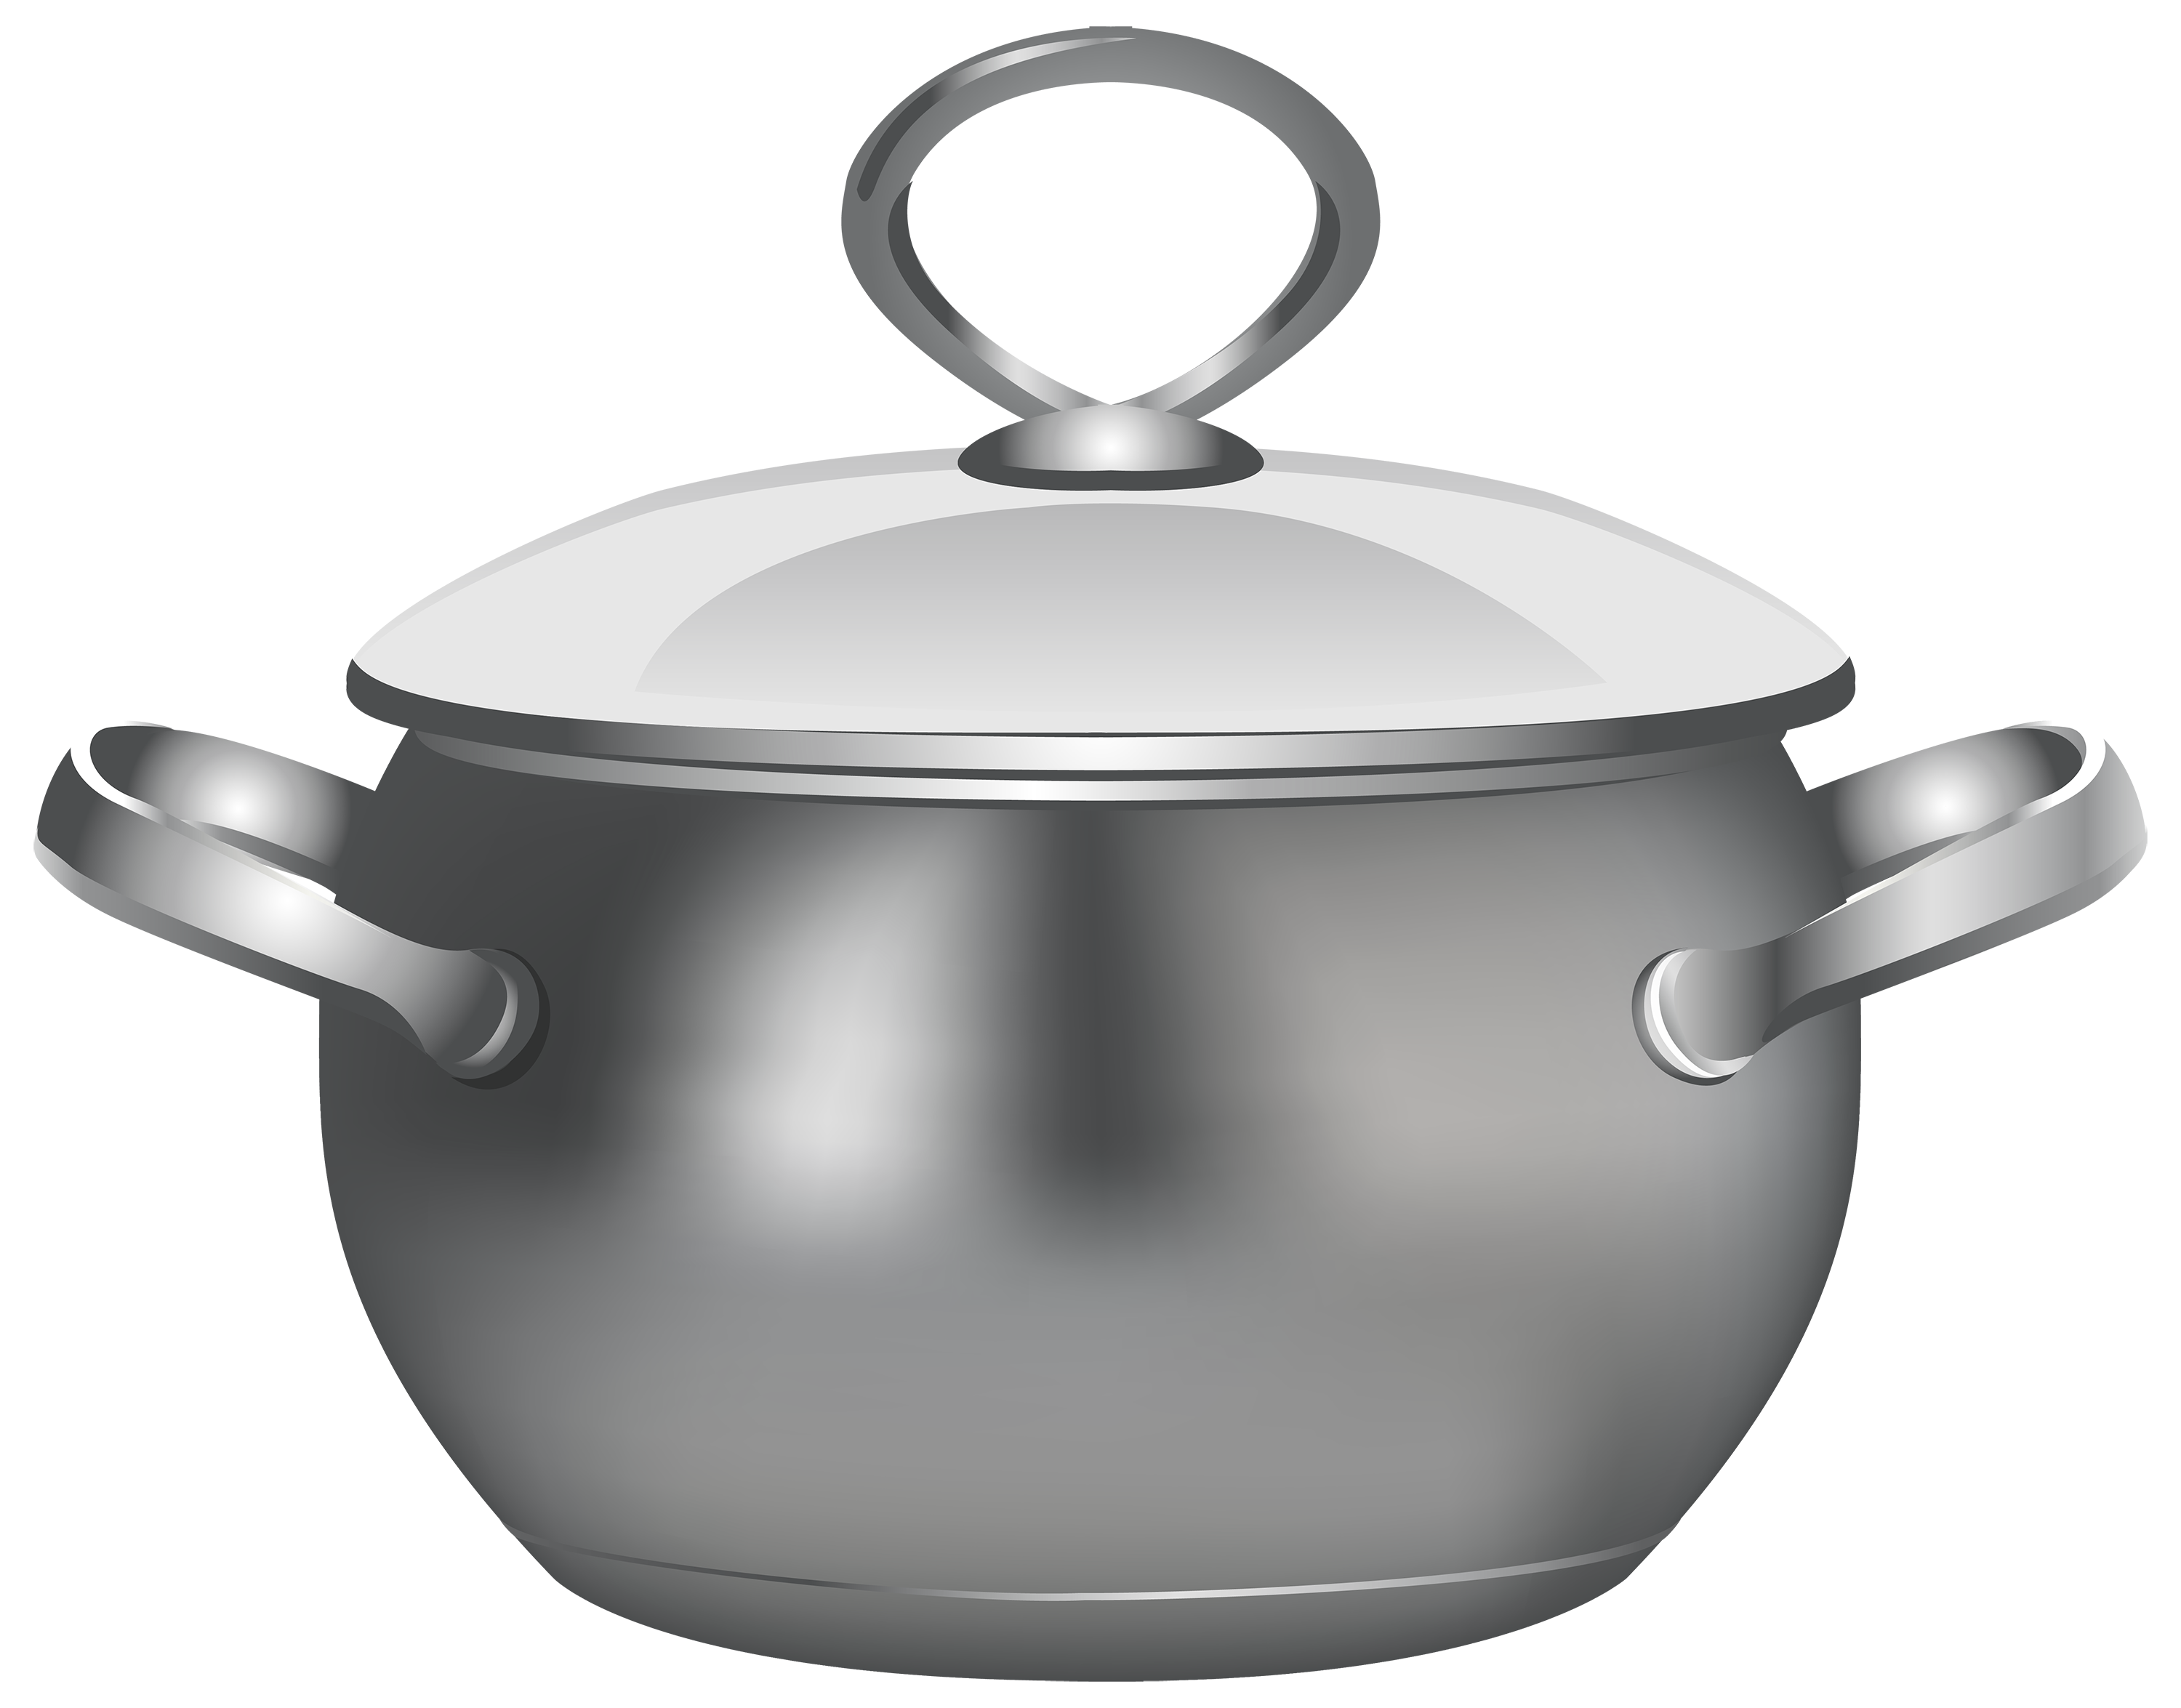 image black and white download Cooking best web highquality. Pot clipart.